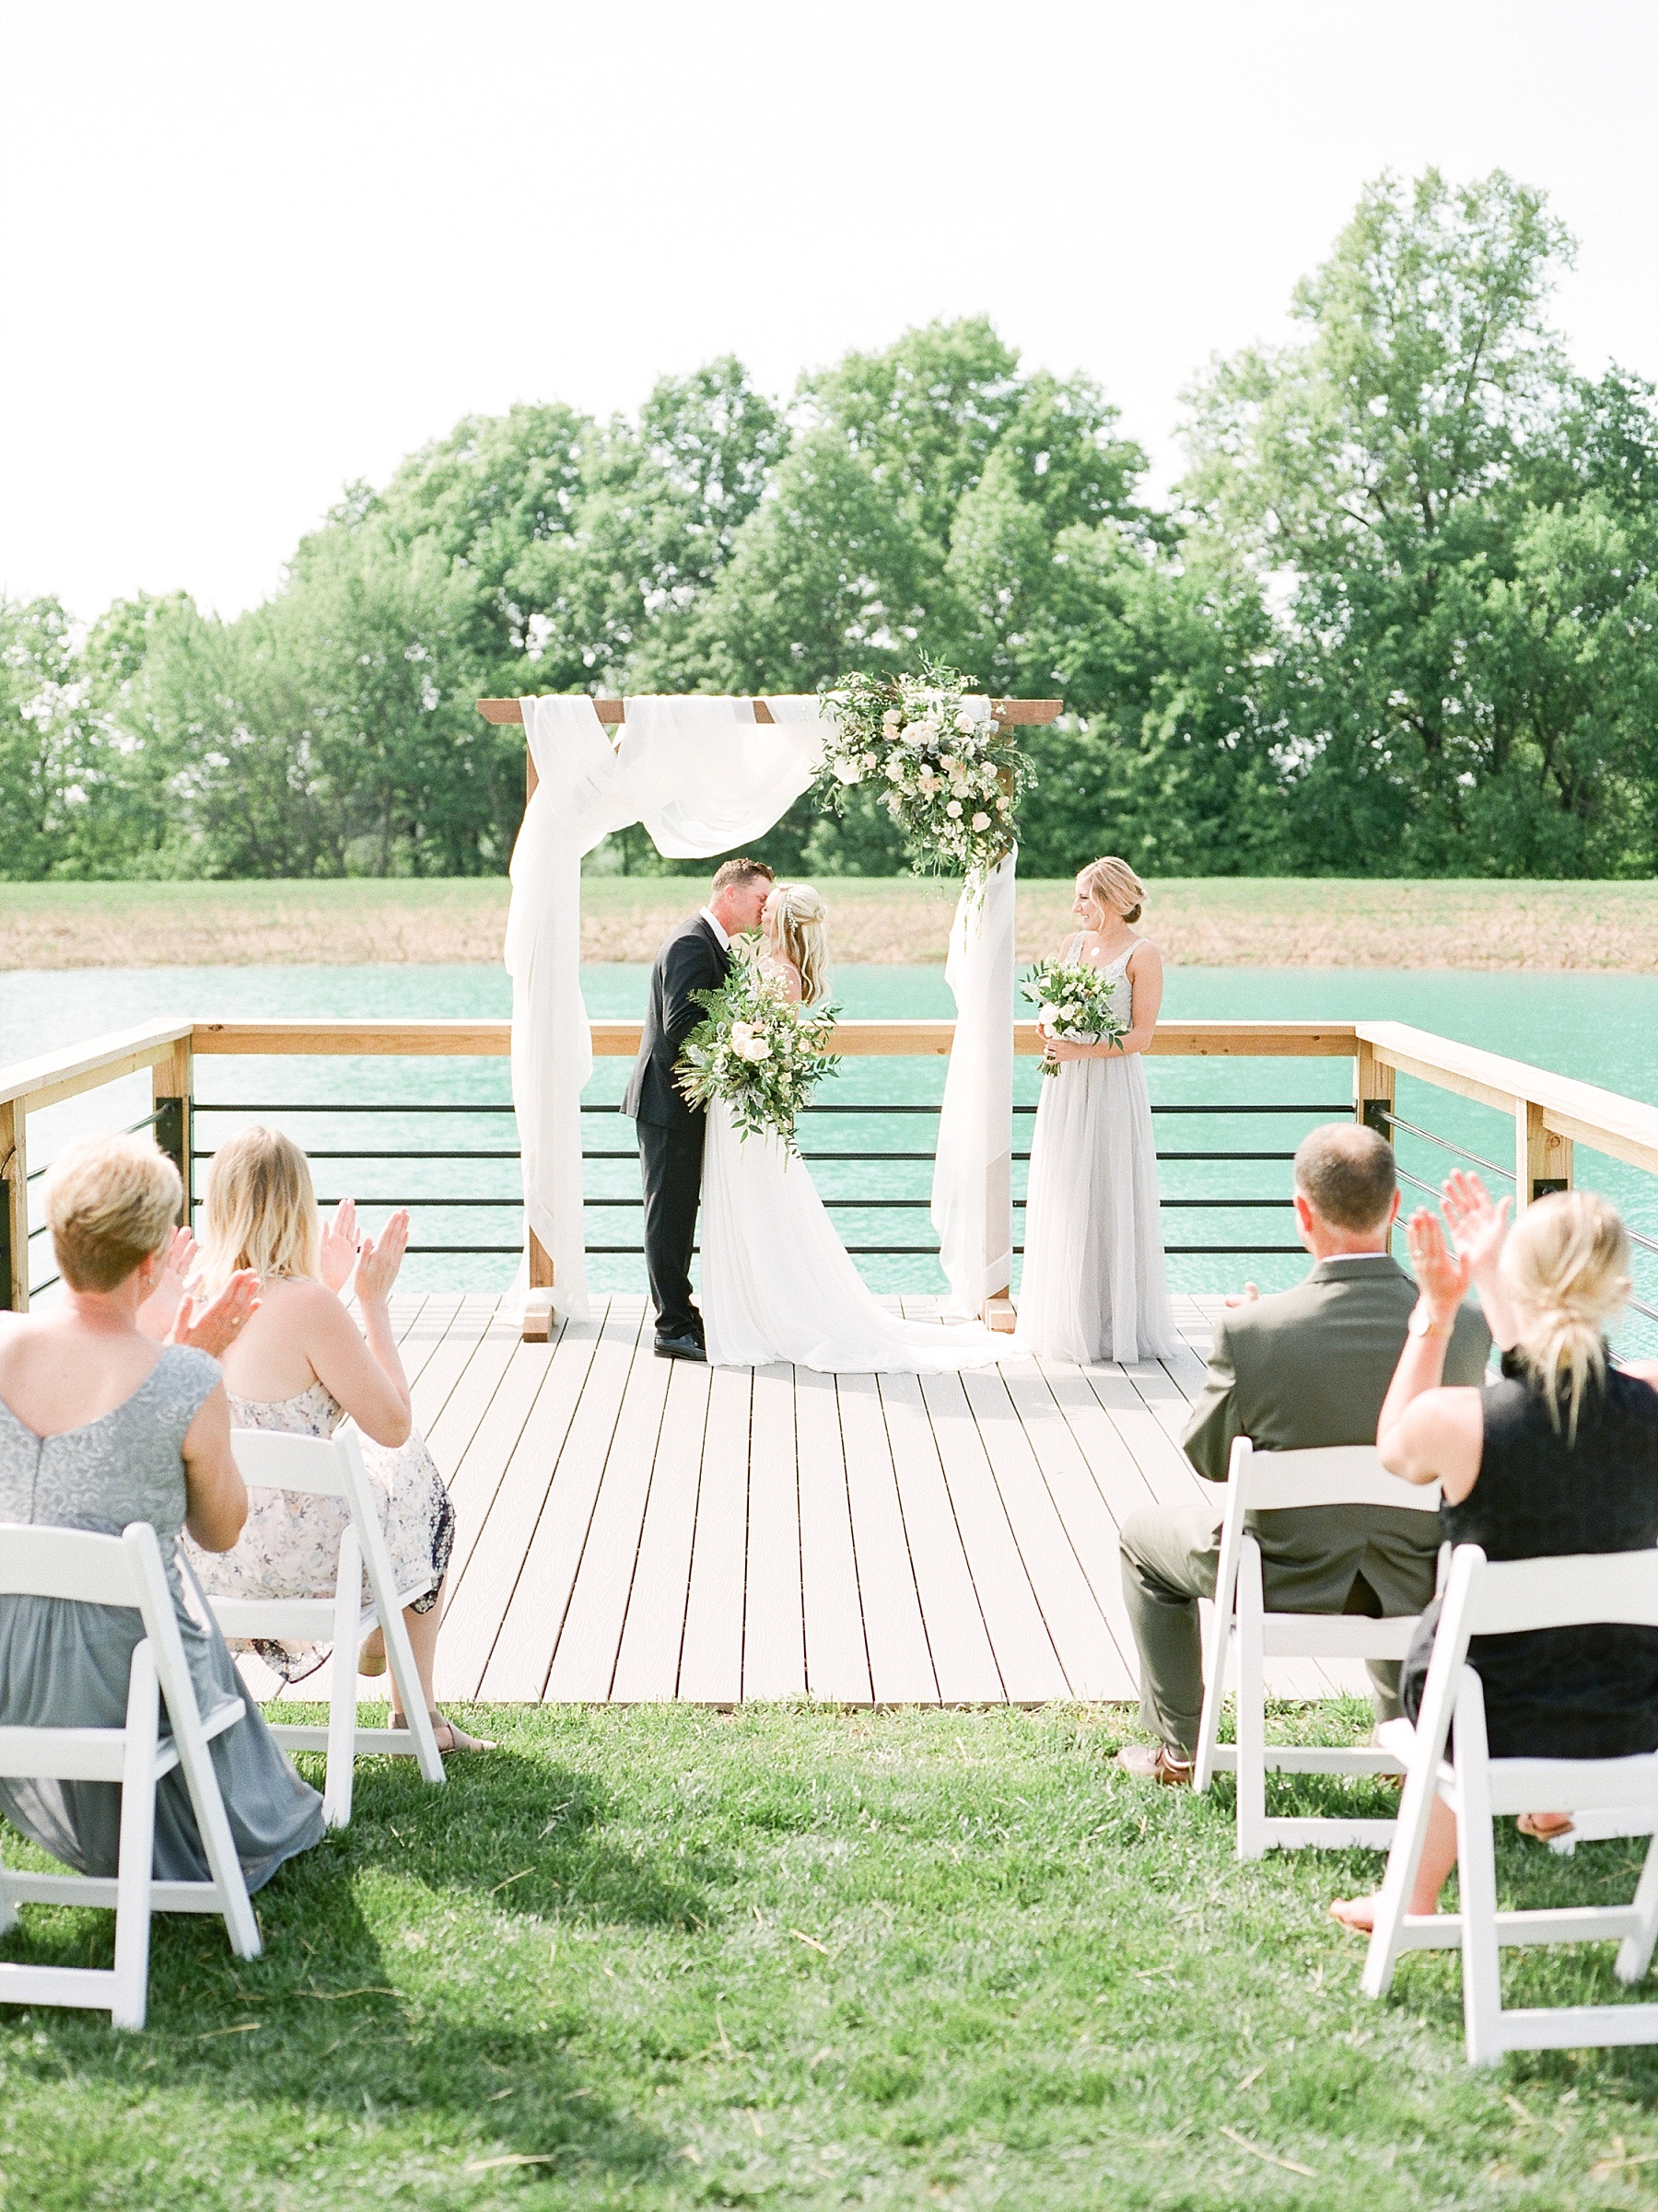 Textural Organic Wedding in All White Venue by Kelsi Kliethermes Wedding Photographer - Missouri, Midwest, and Destinations_0071.jpg